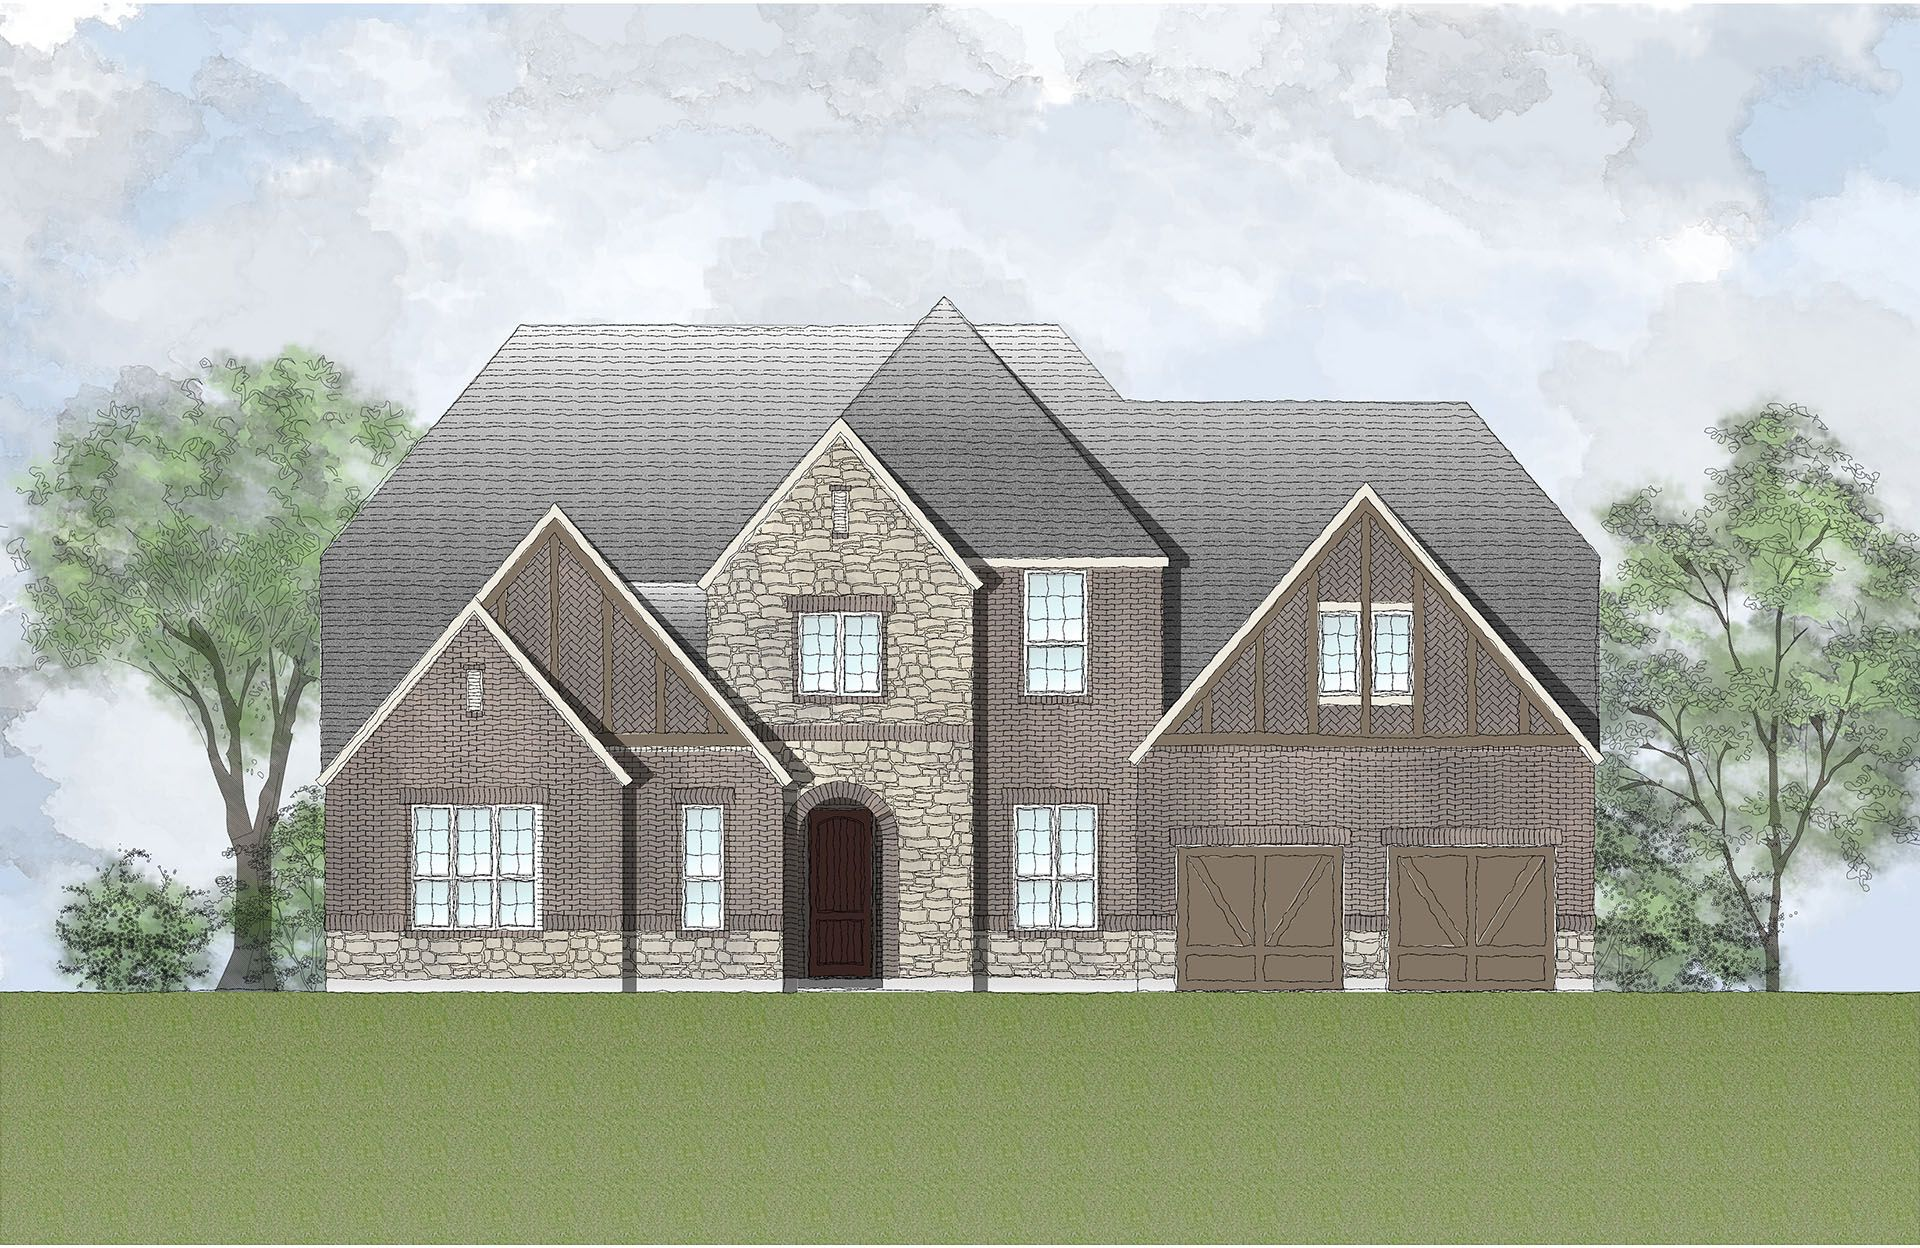 Single Family for Active at Woodtrace - Grantley 33923 Redwood Park Pinehurst, Texas 77362 United States